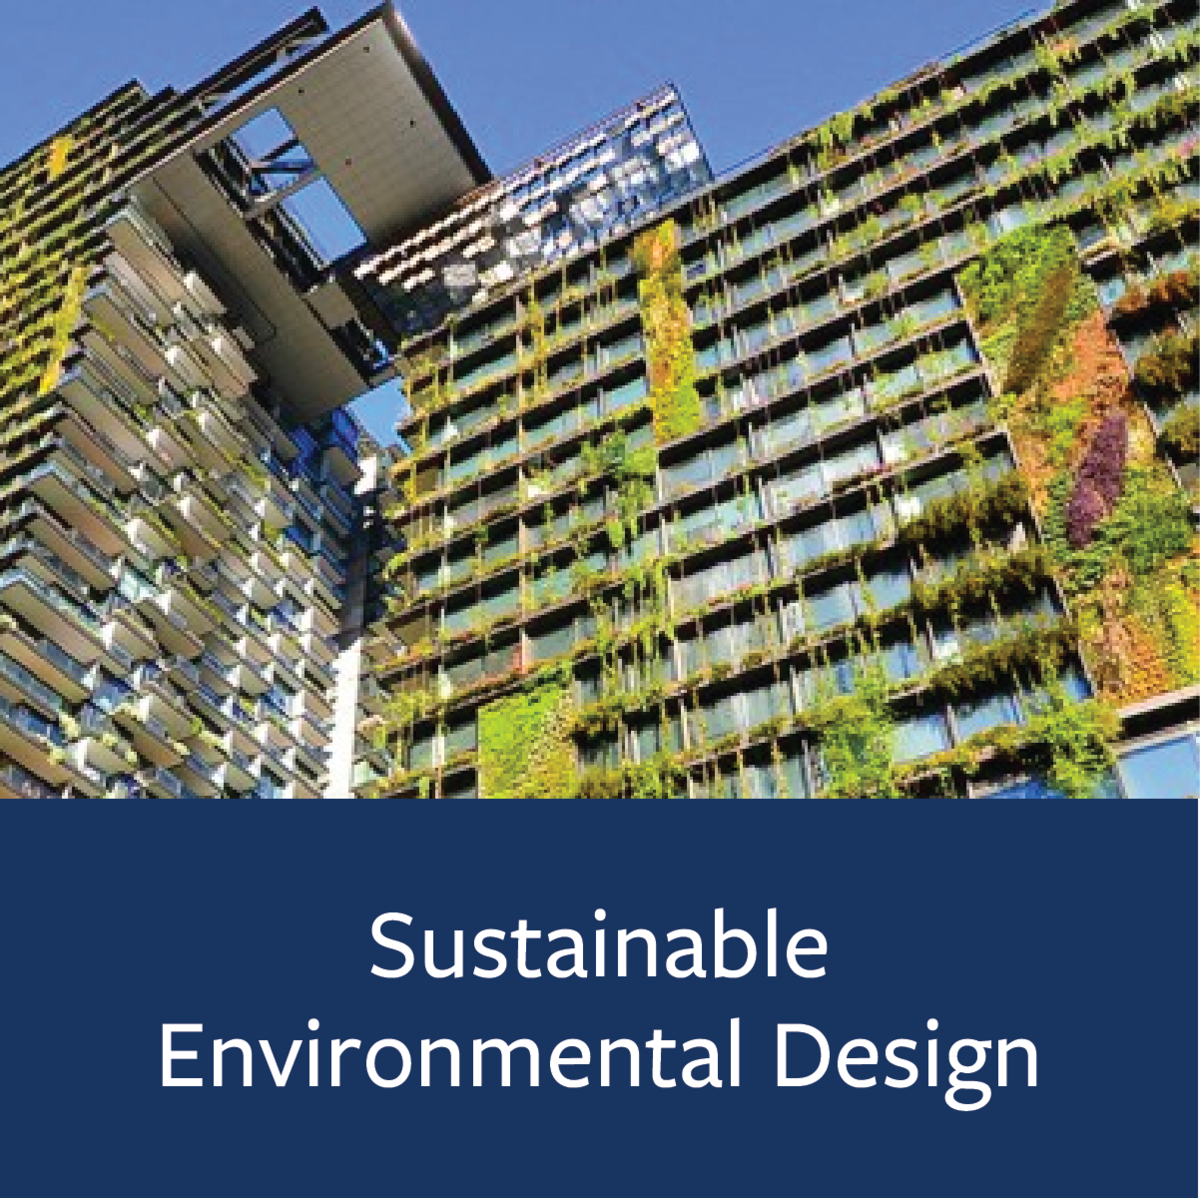 Sustainable Environmental Design